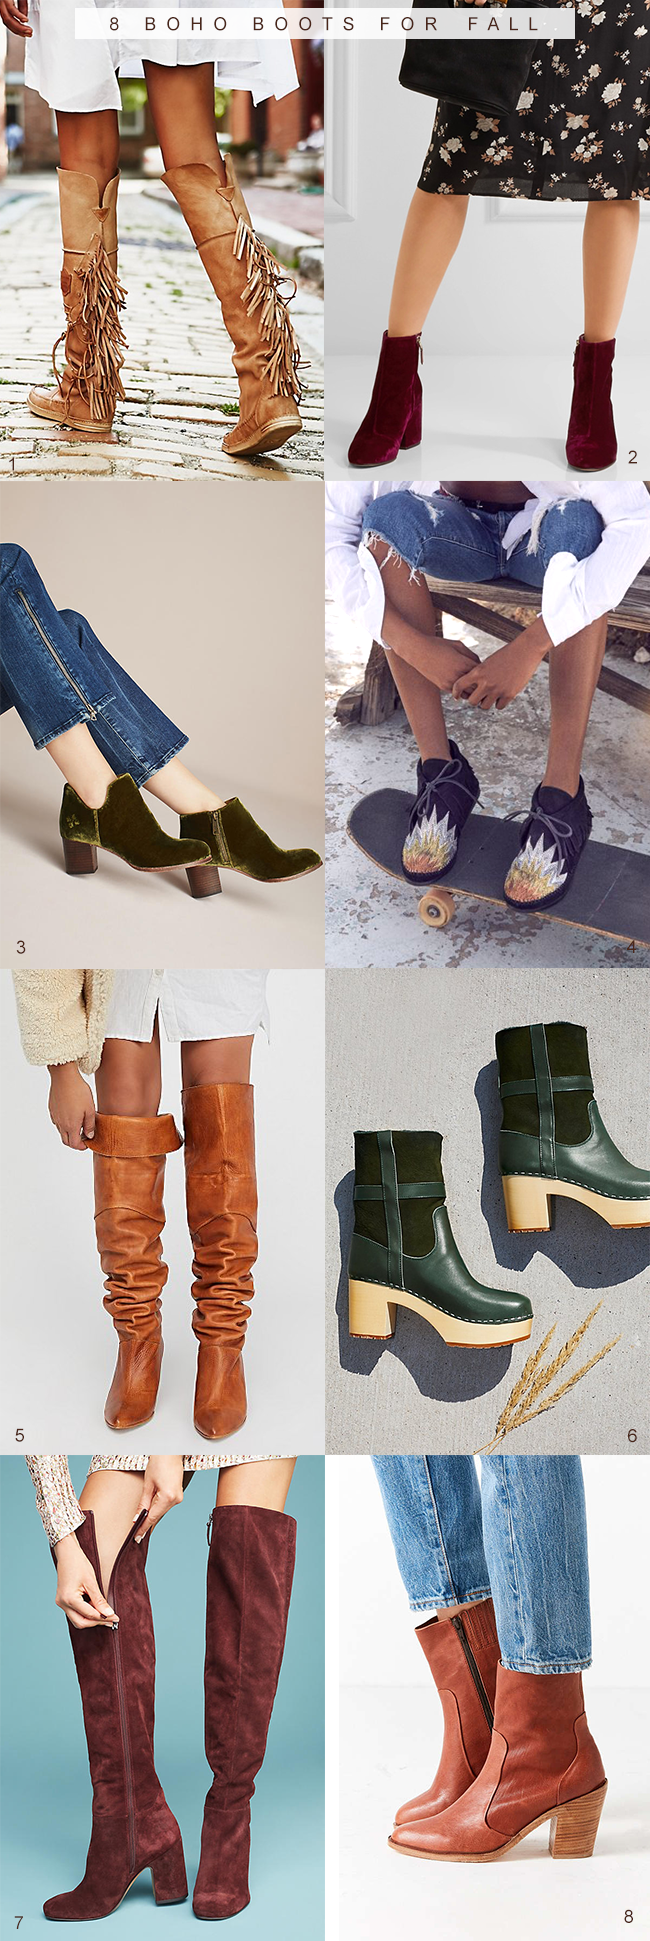 8 Boho Boots for Fall | Bubby and Bean